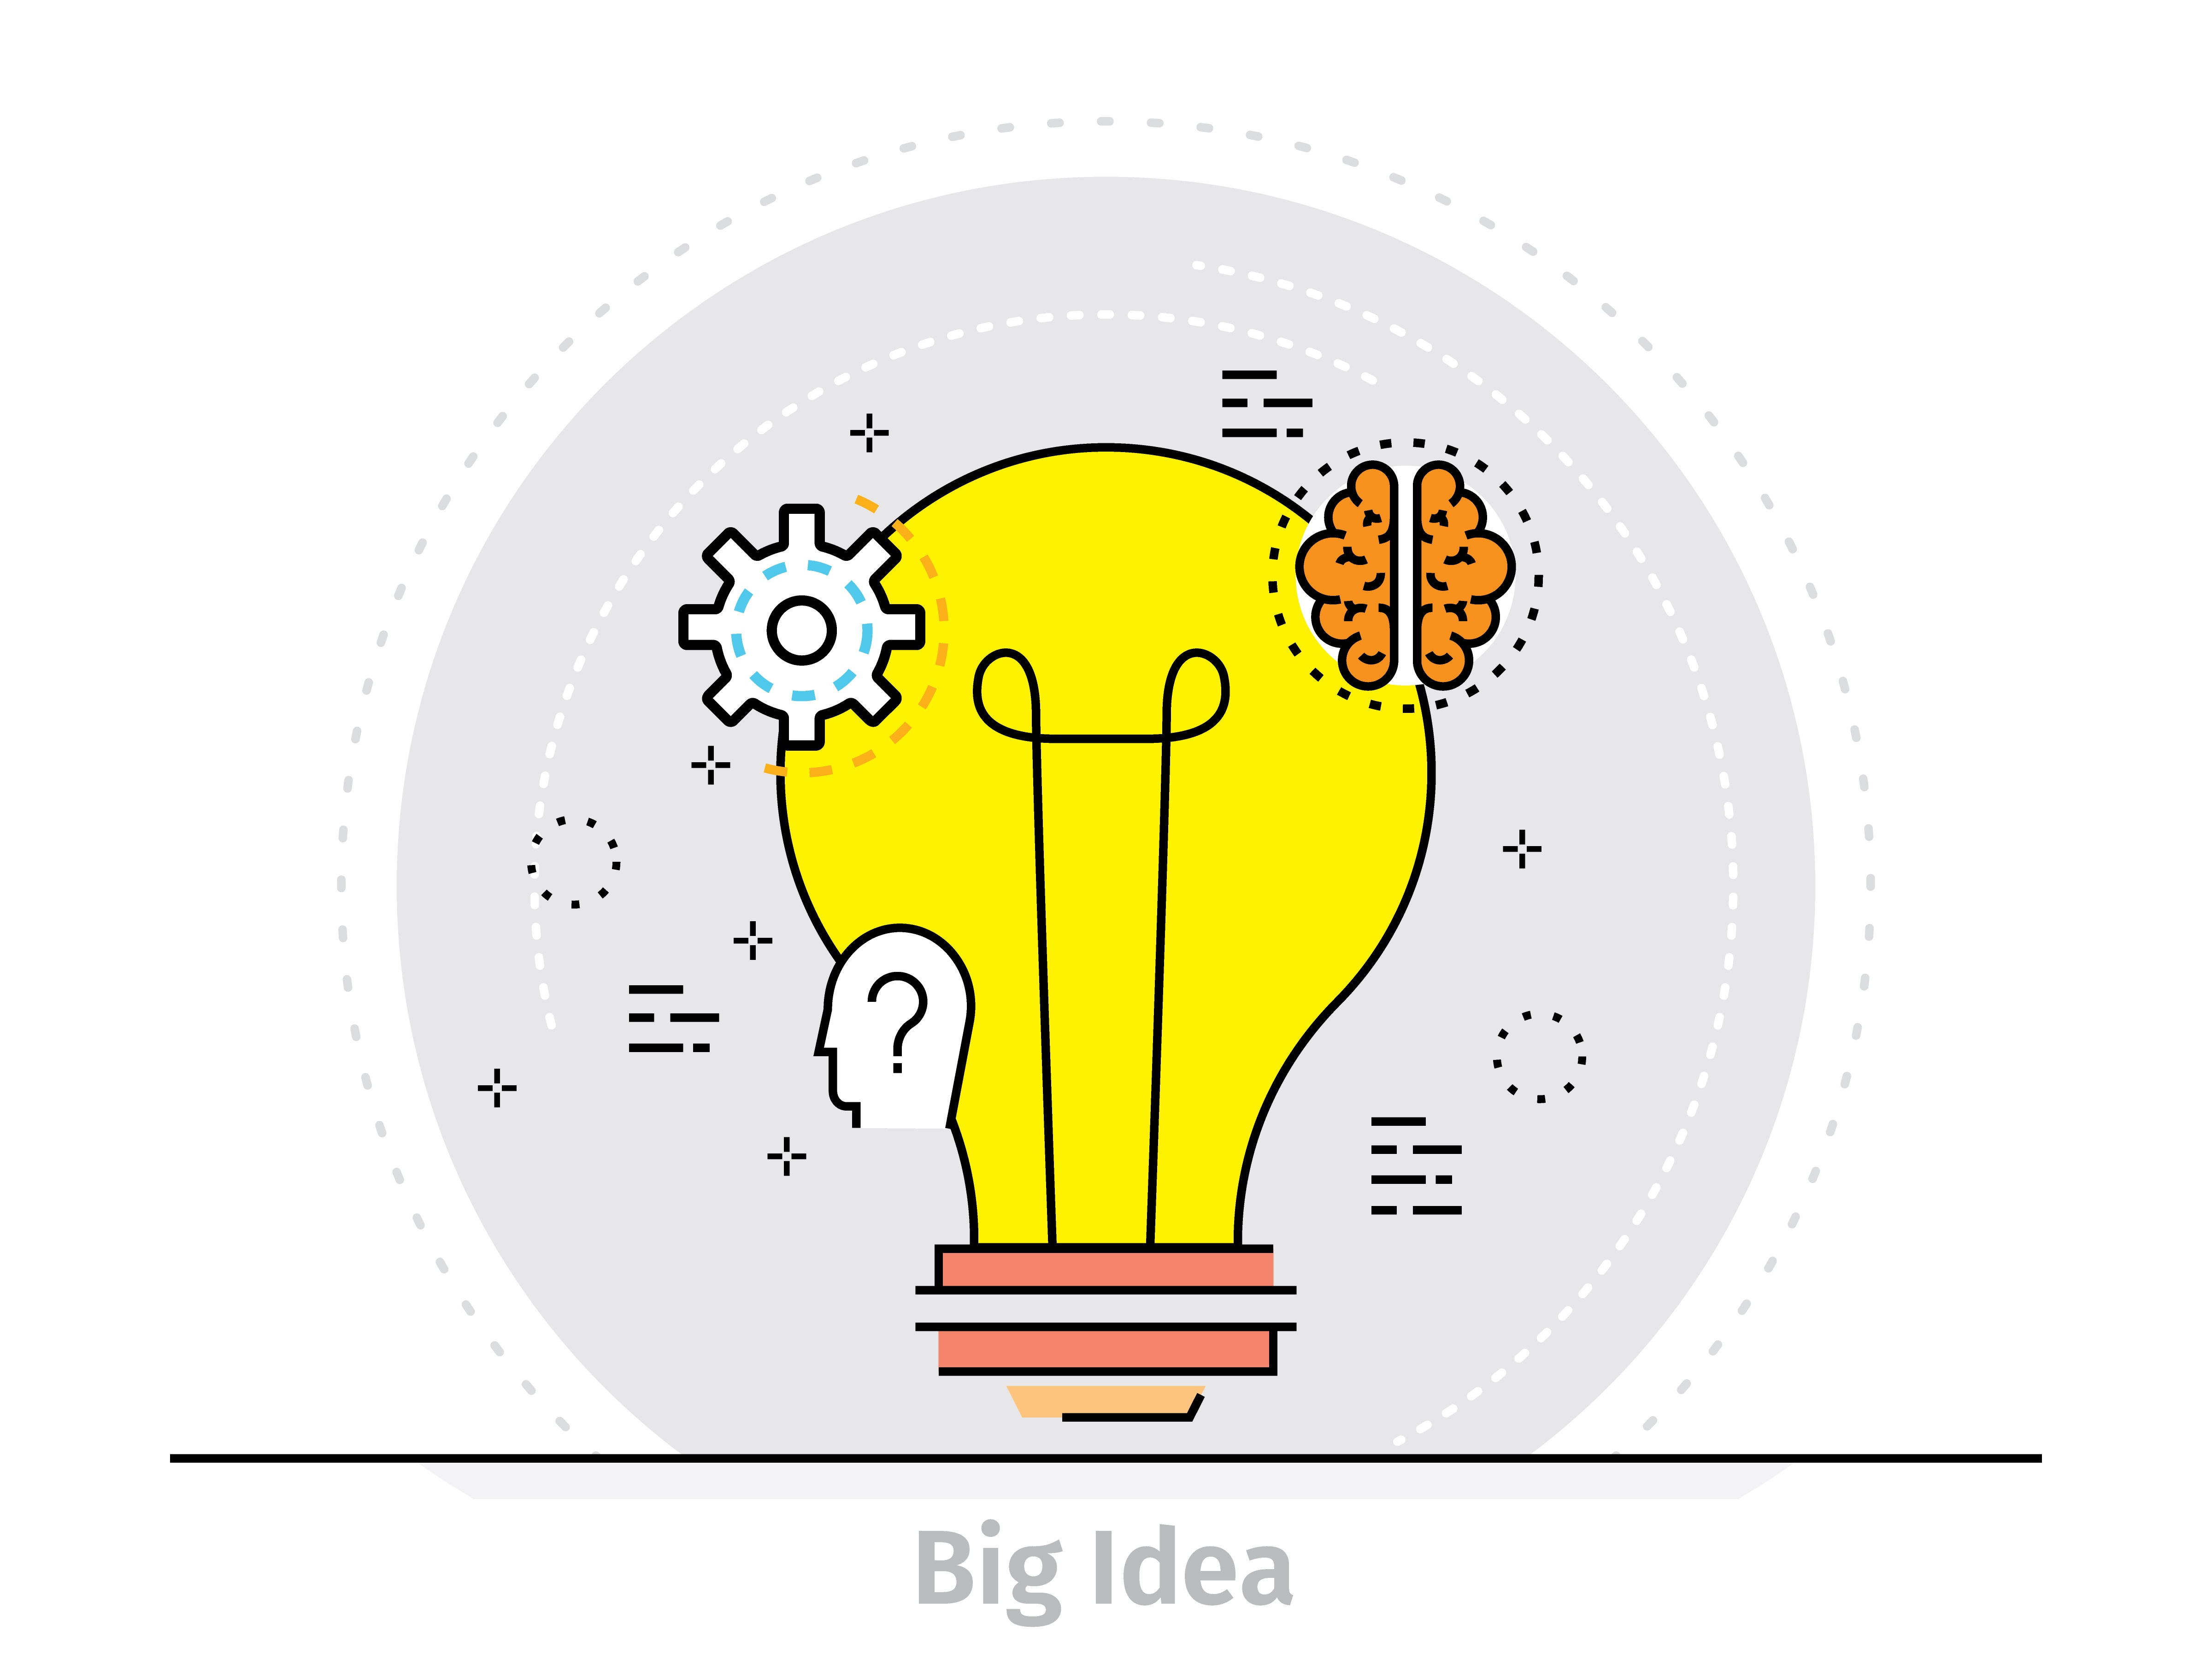 Content is king, and knowing how to convey big ideas to all kinds of people is an important skill set for content marketers